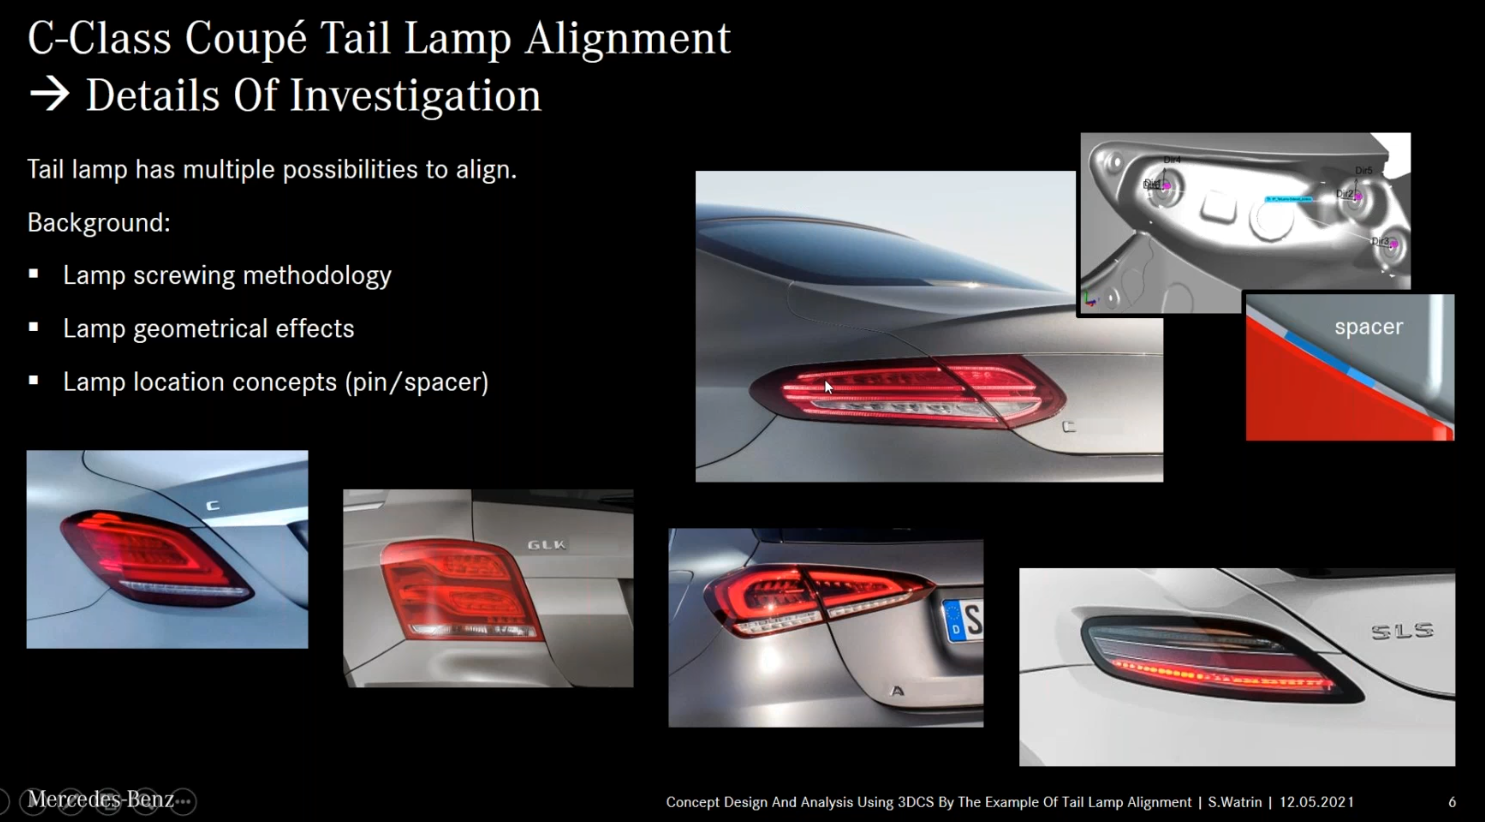 c-class-coupe-tail-lamp-alignment